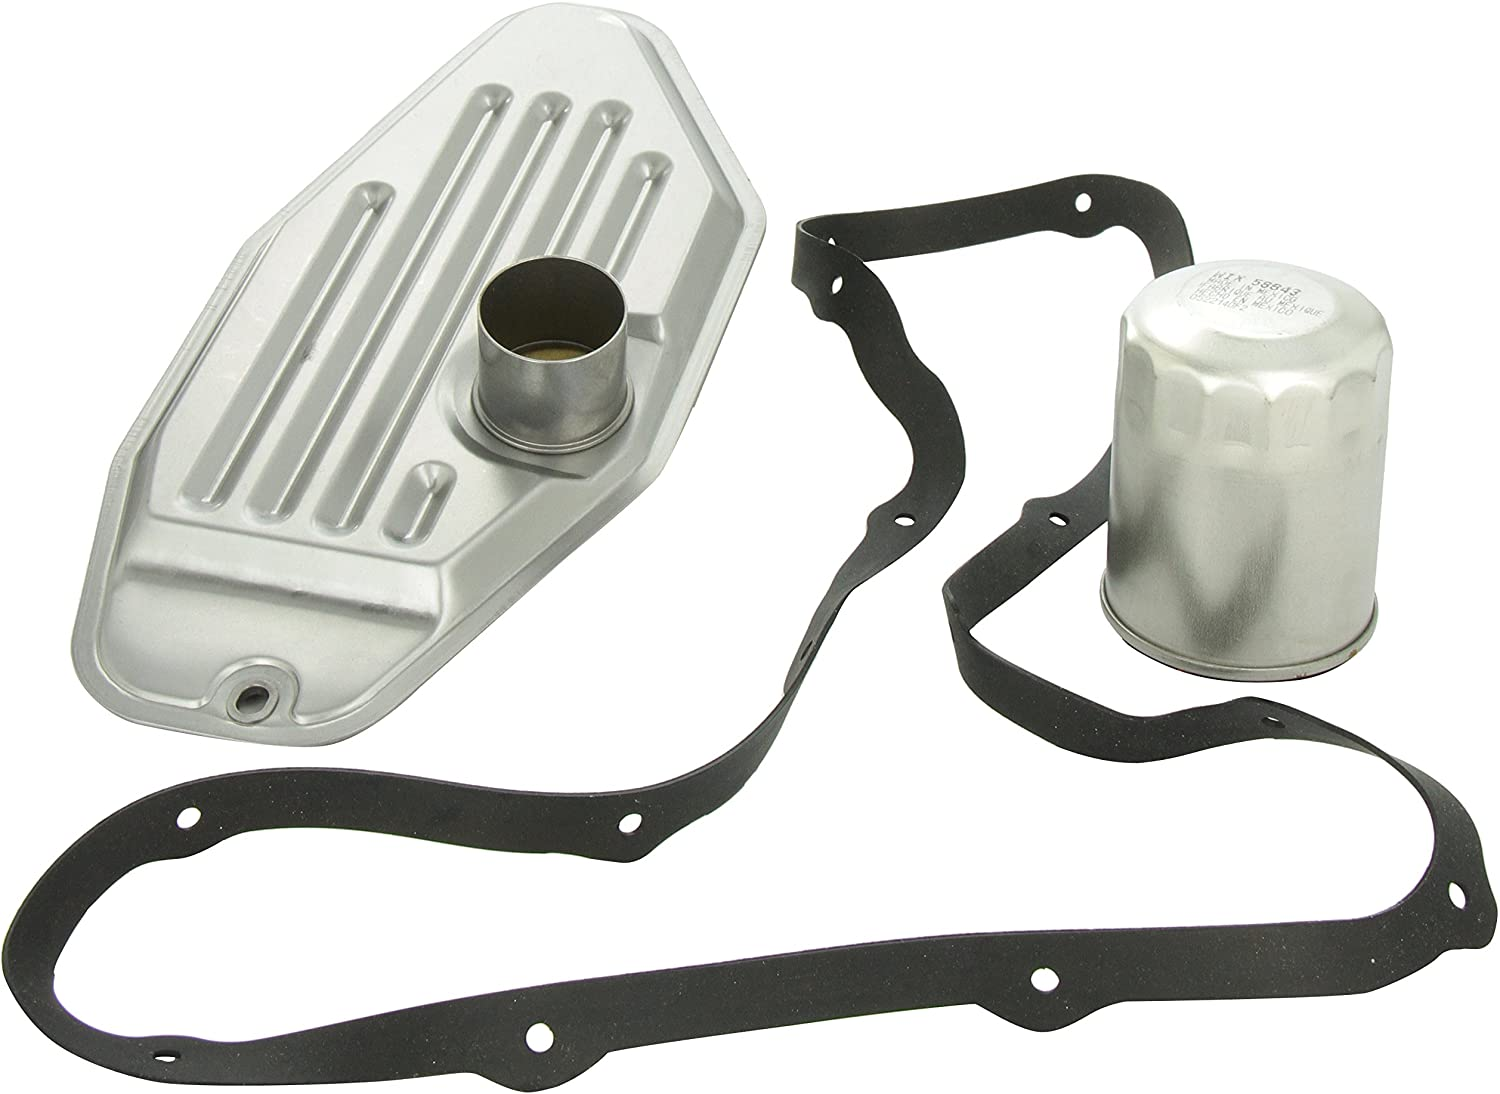 Wix Colorado Springs Mall Max 55% OFF Filters - 58843 Automatic of 1 Transmission Pack Filter